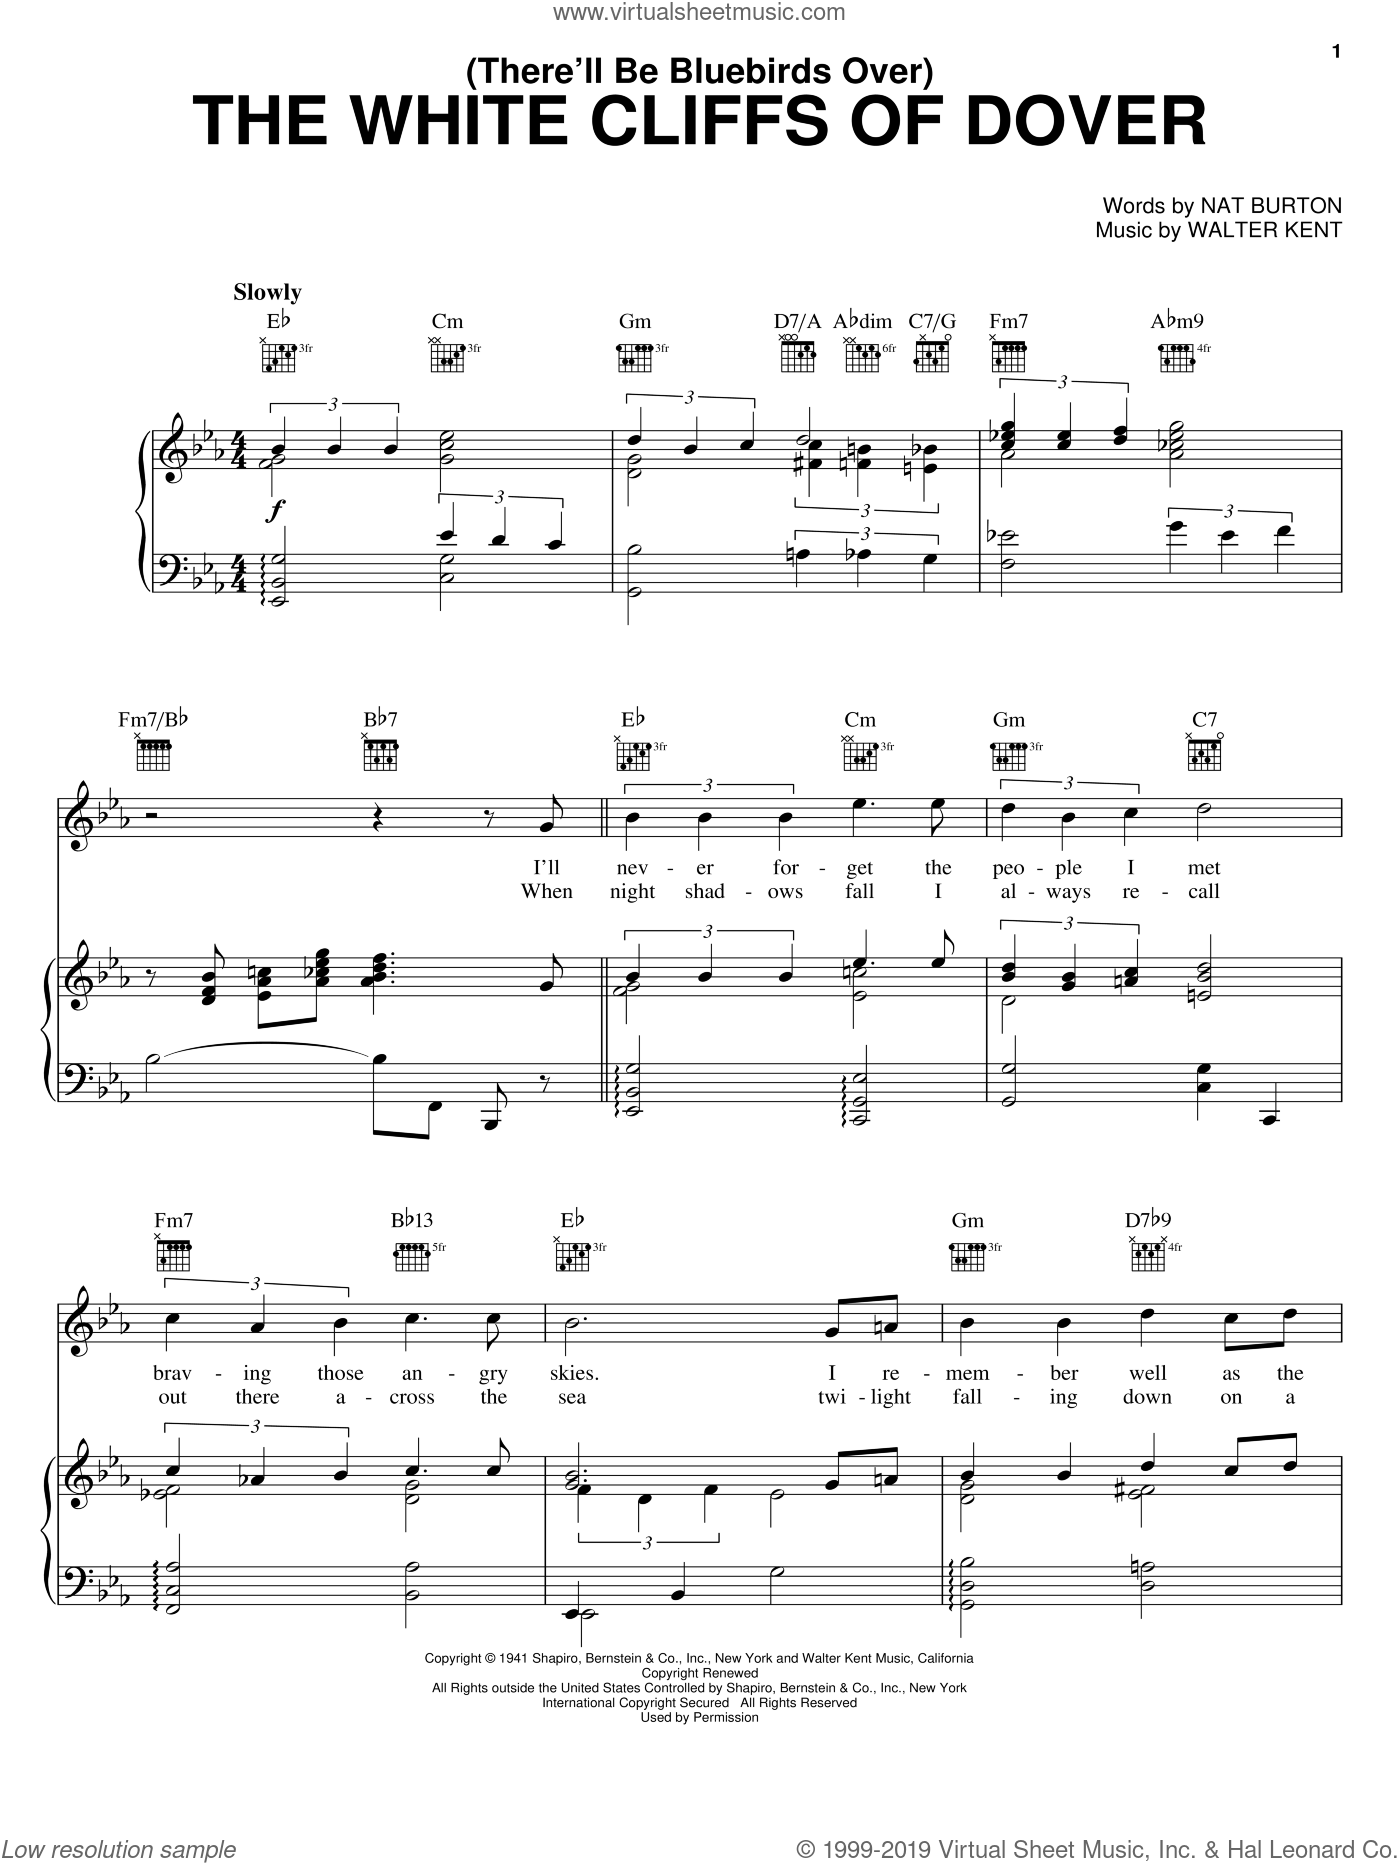 (There'll Be Bluebirds Over) The White Cliffs Of Dover sheet music for voice, piano or guitar by Nat Burton and Walter Kent, intermediate skill level